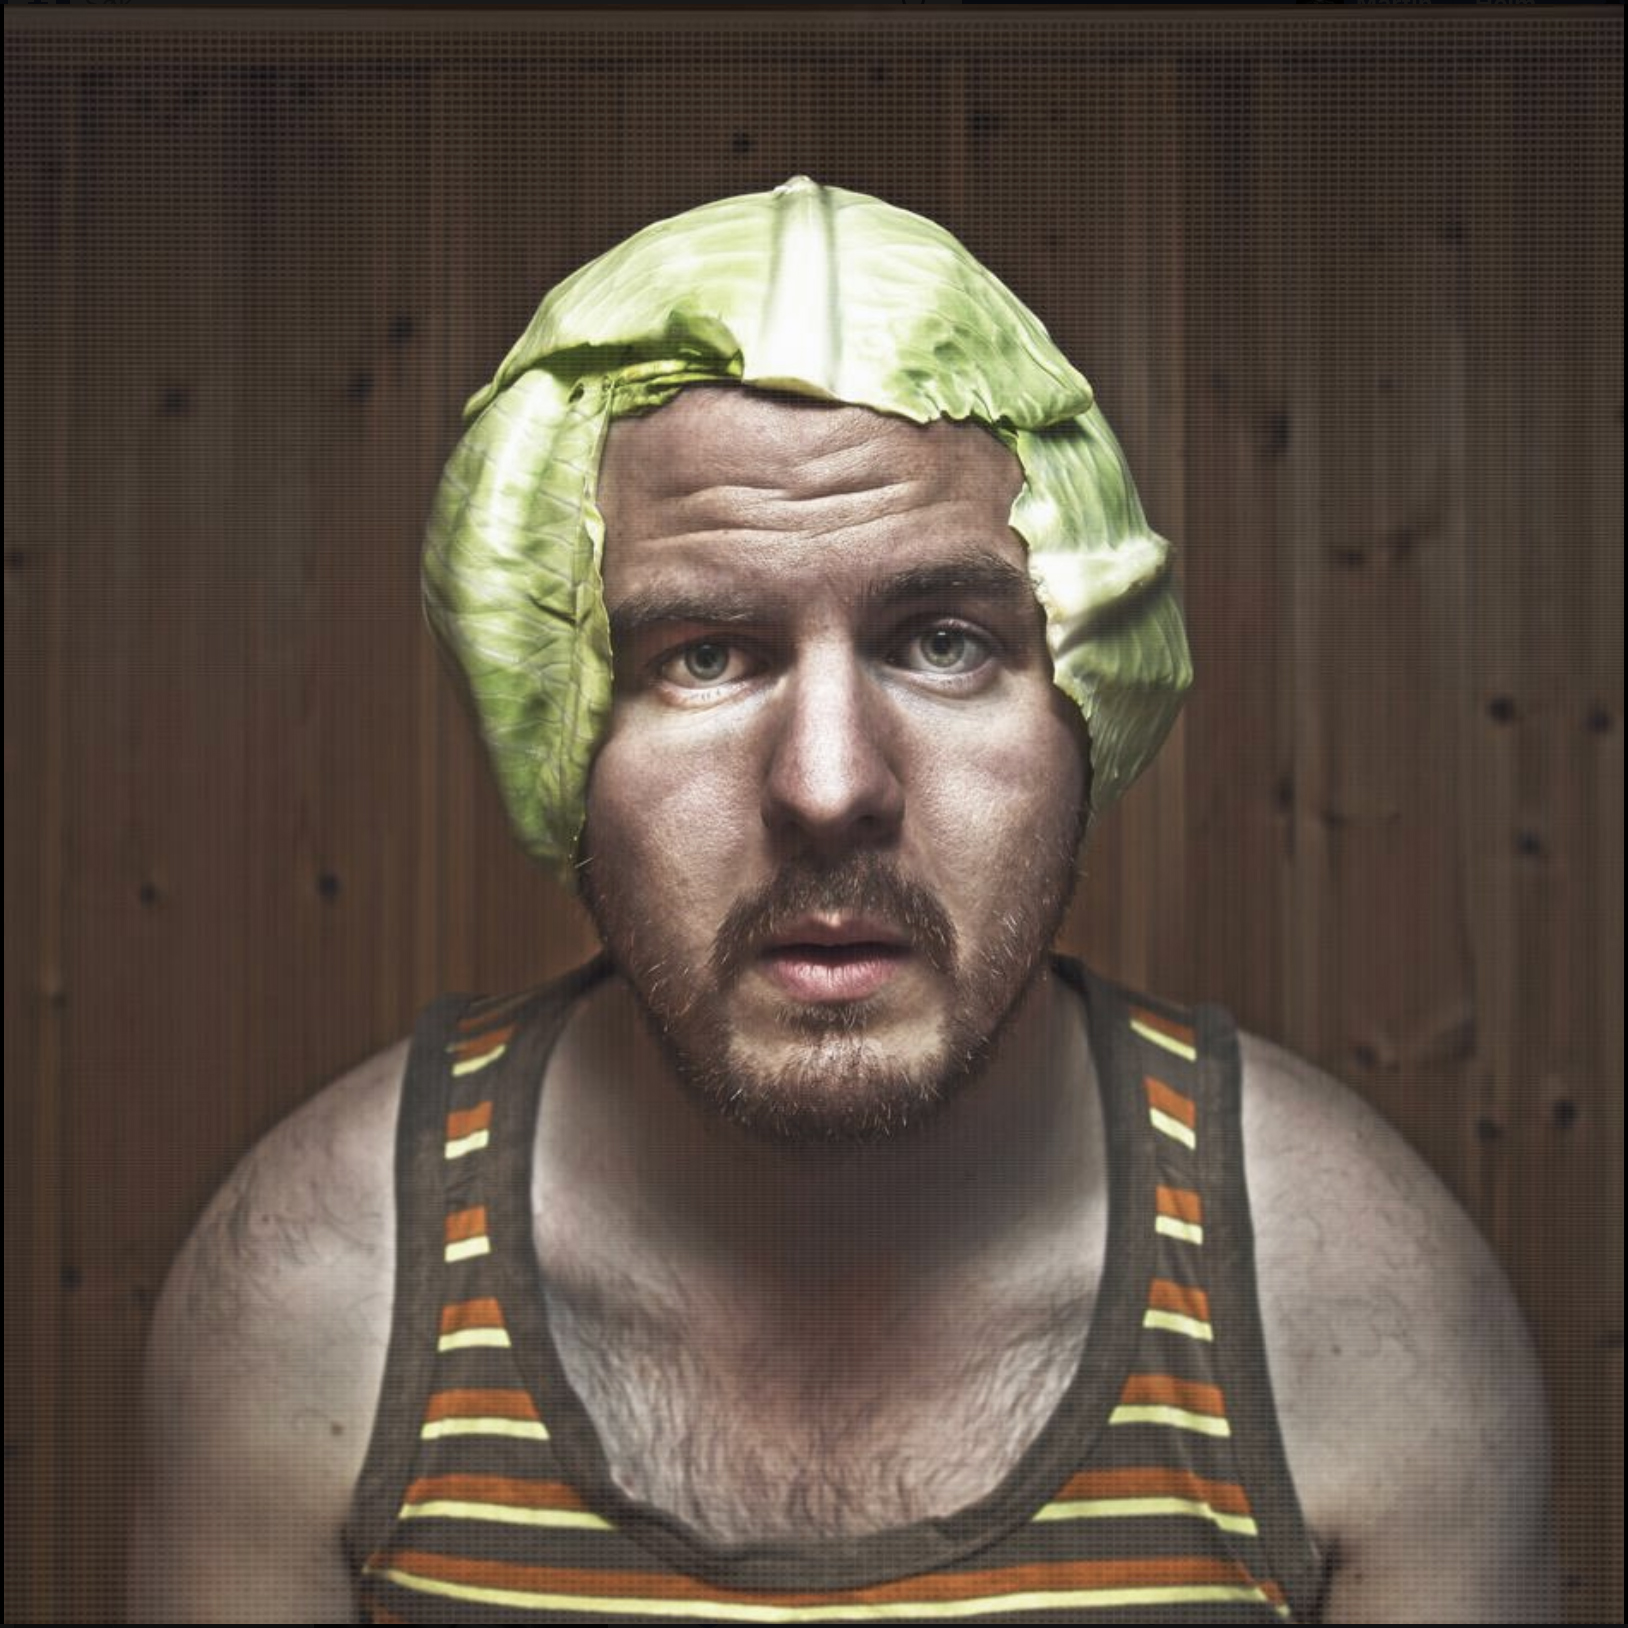 Photo by: Martin Losvik: (Self portrait with cabbage)